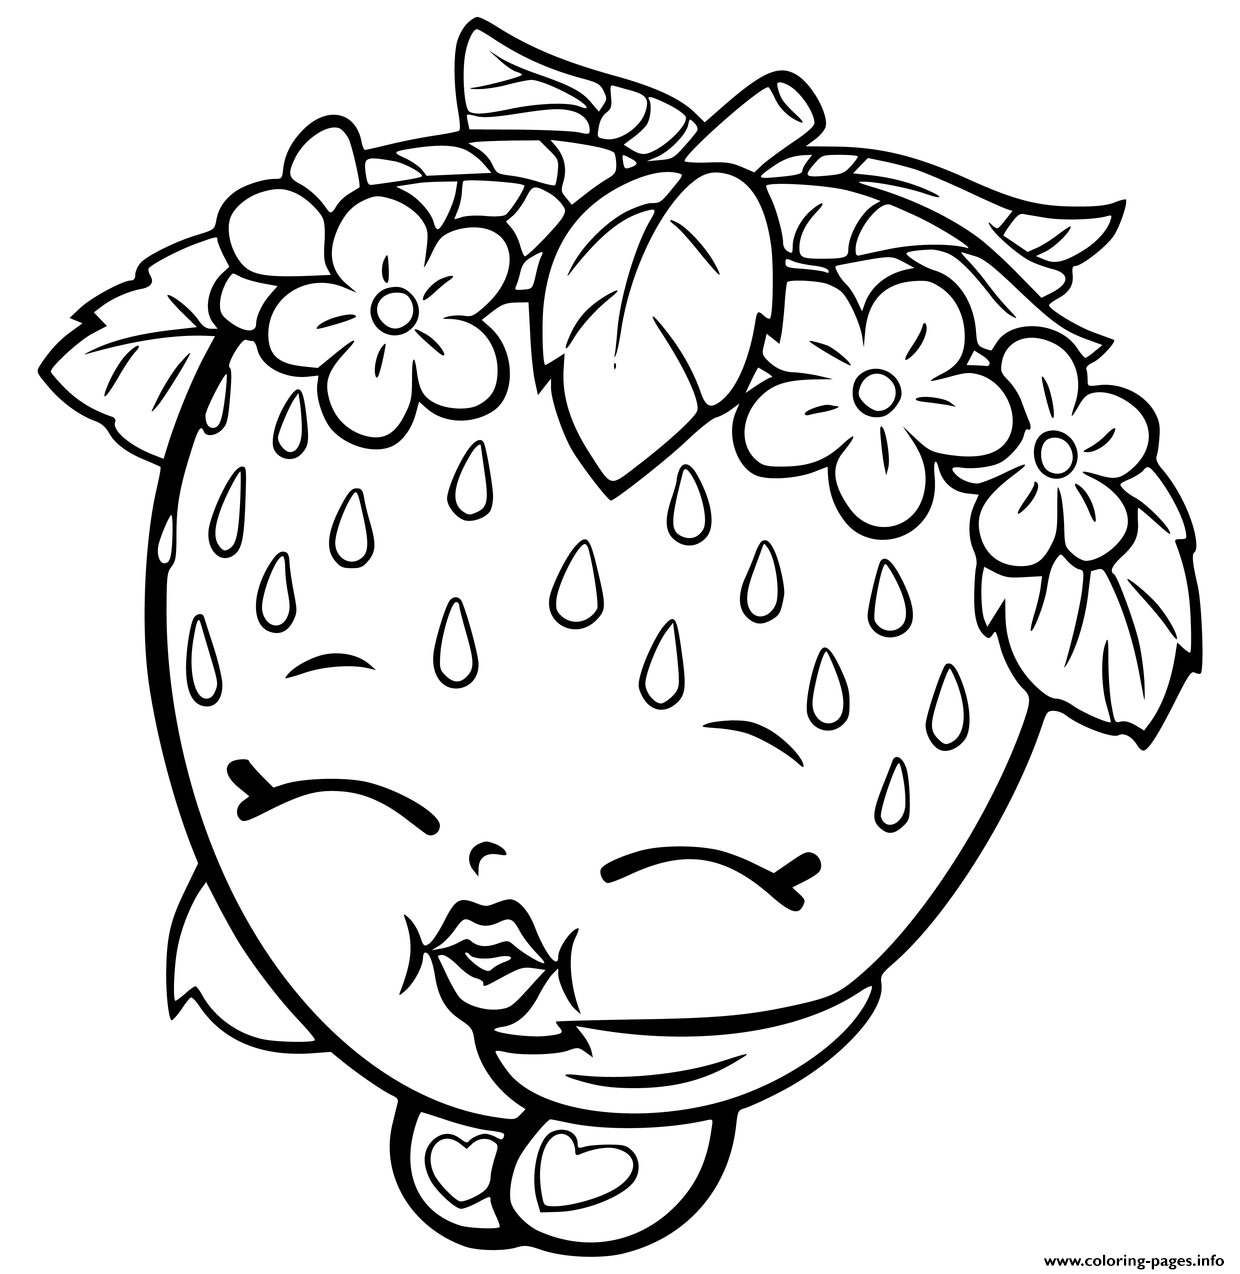 Print Shopkins Strawberry Coloring Pages Coloring Pages For Girls Shopkins Colouring Pages Cartoon Coloring Pages